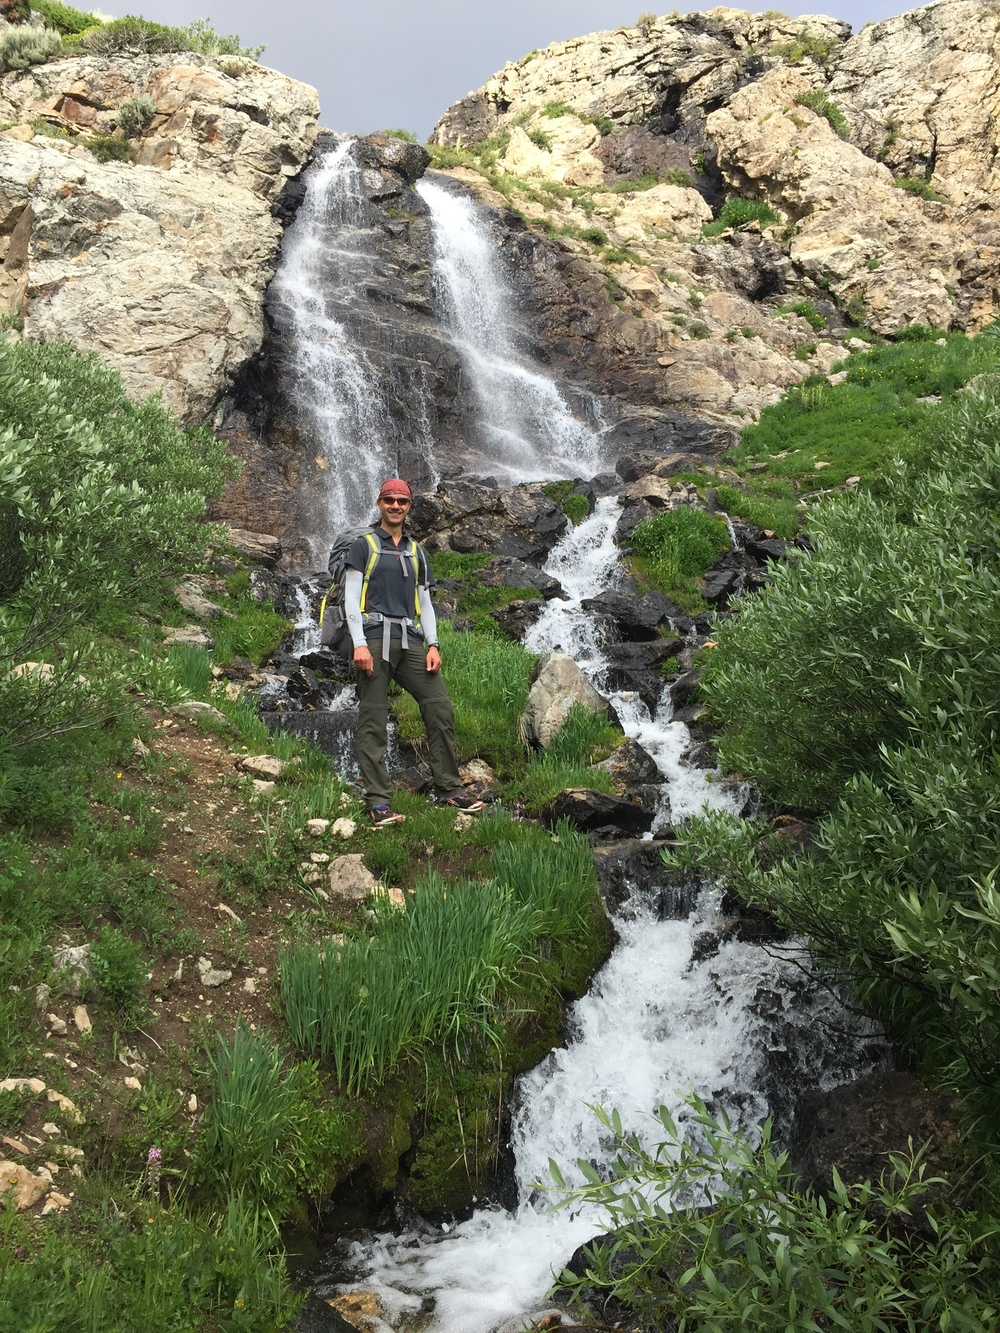 Andrew at the base of the Overland Creek cascade